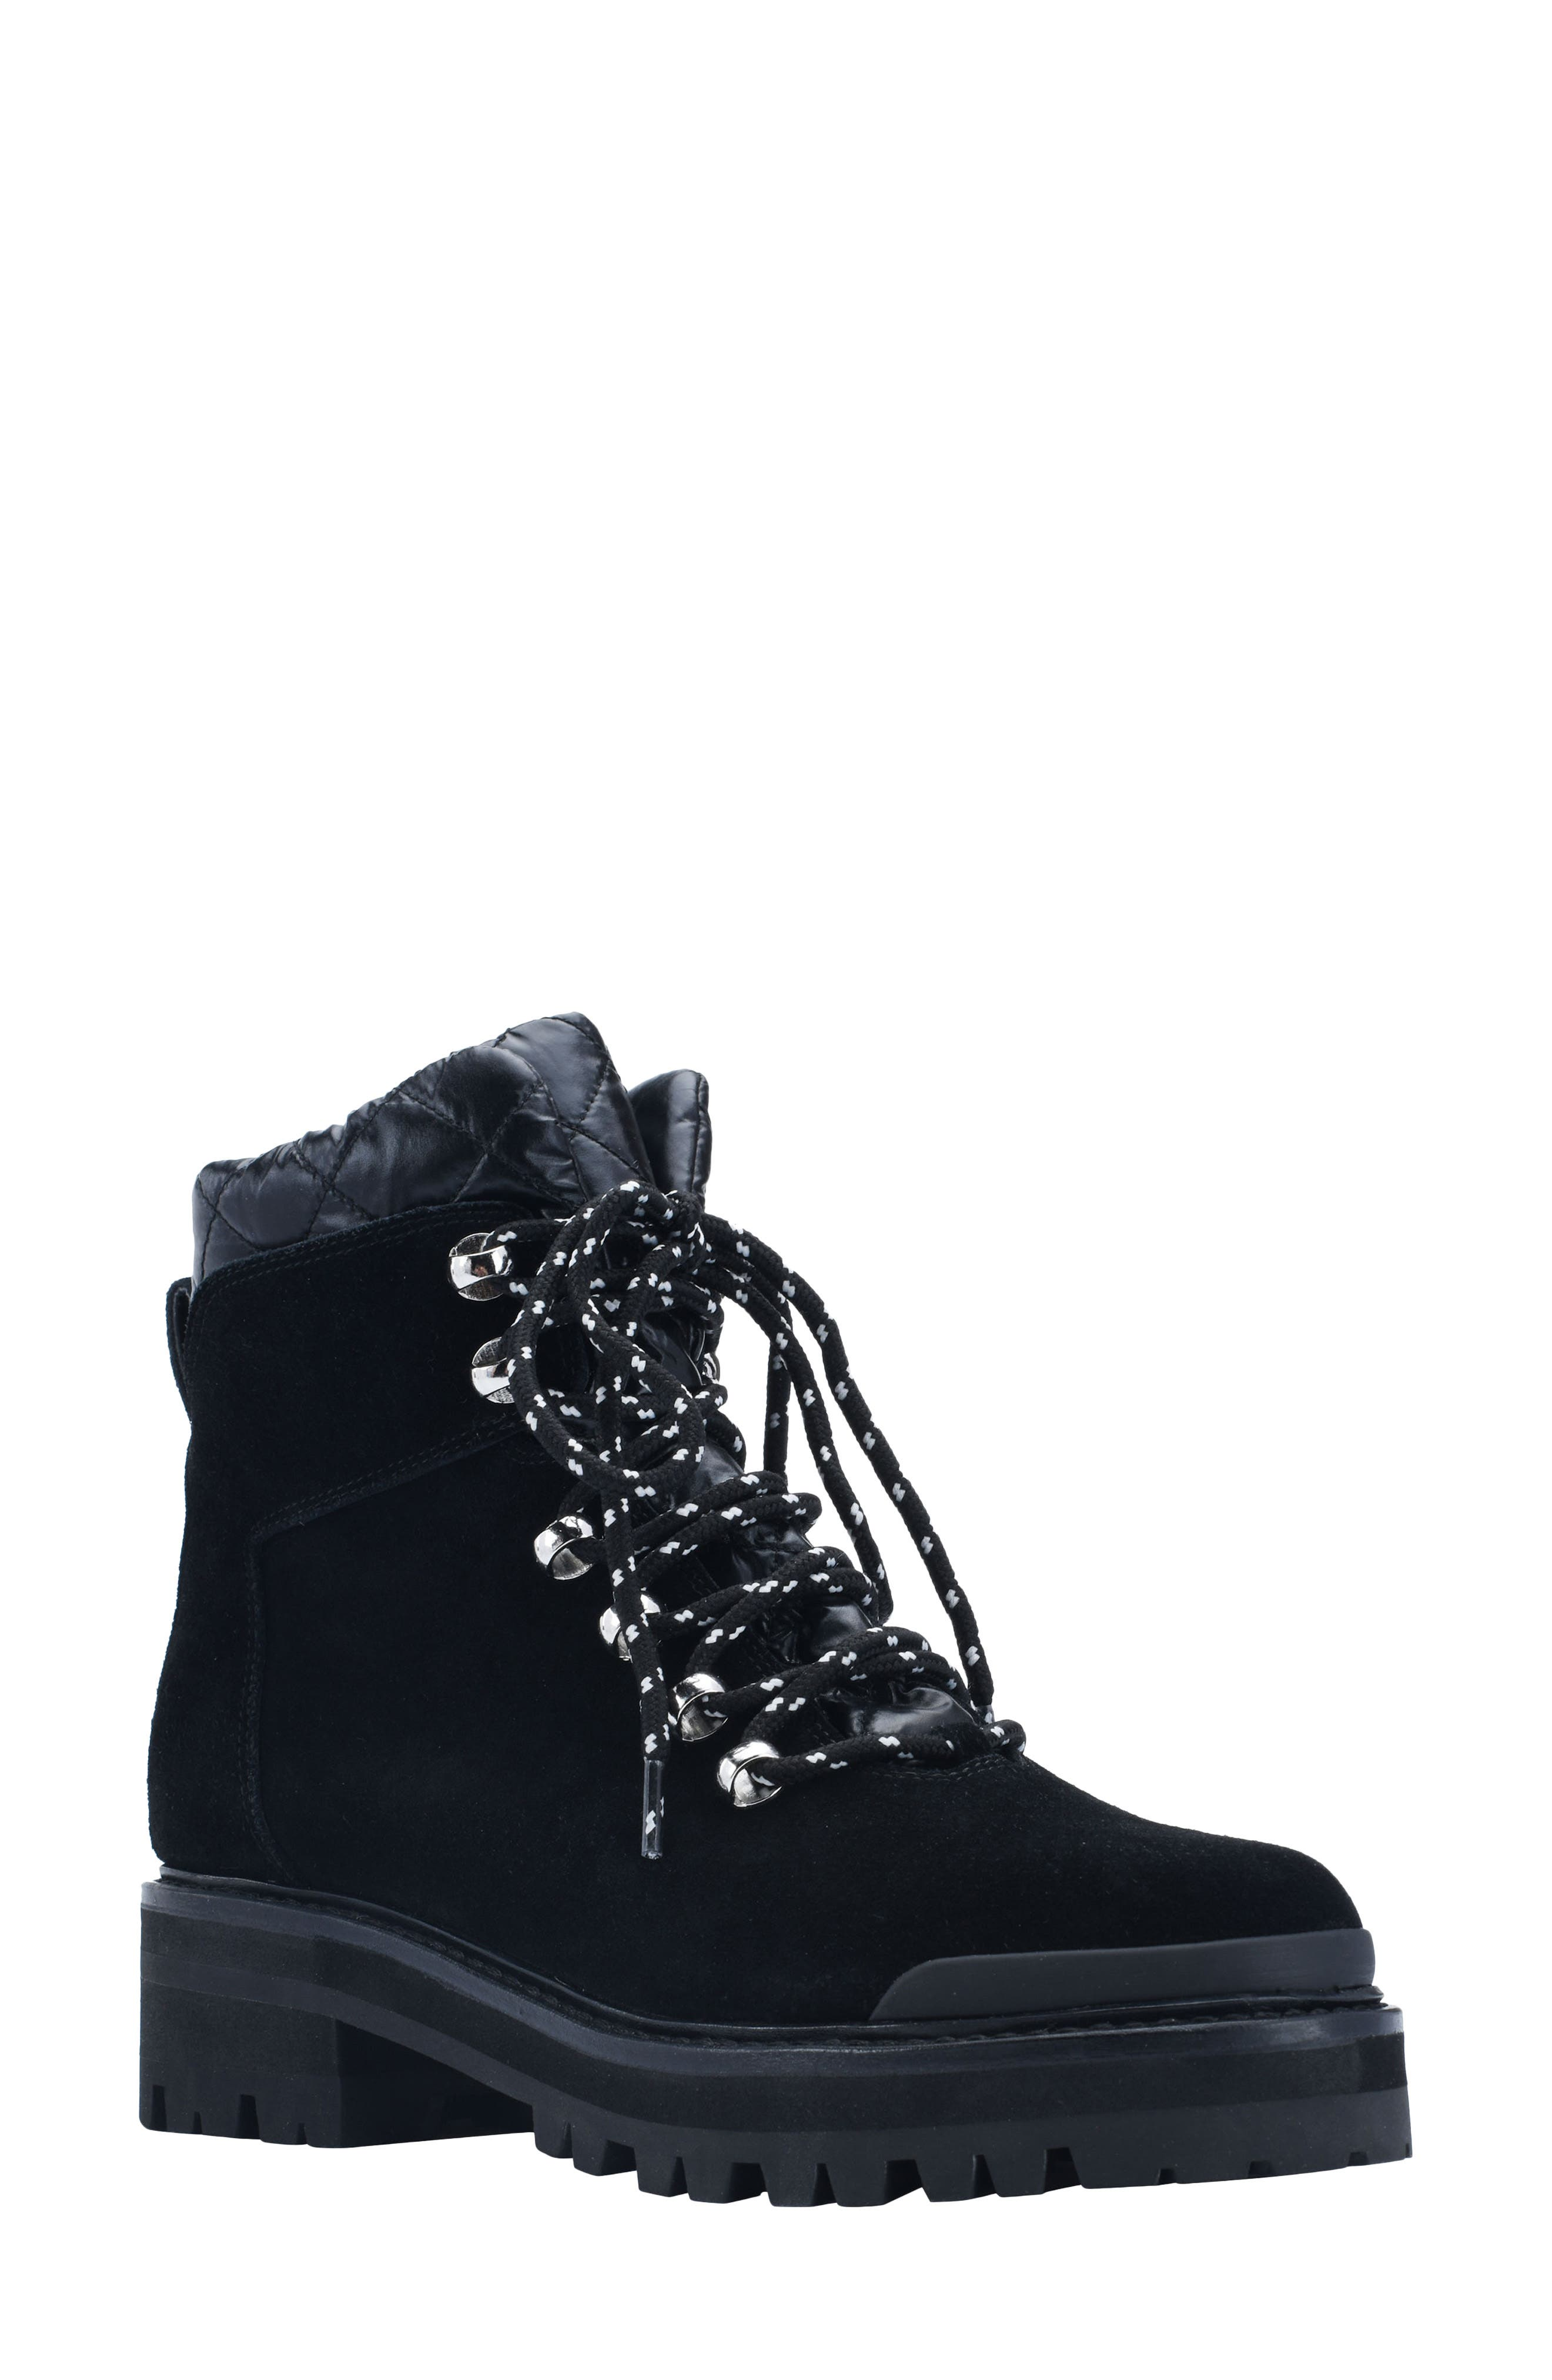 Innie Lace-Up Boot